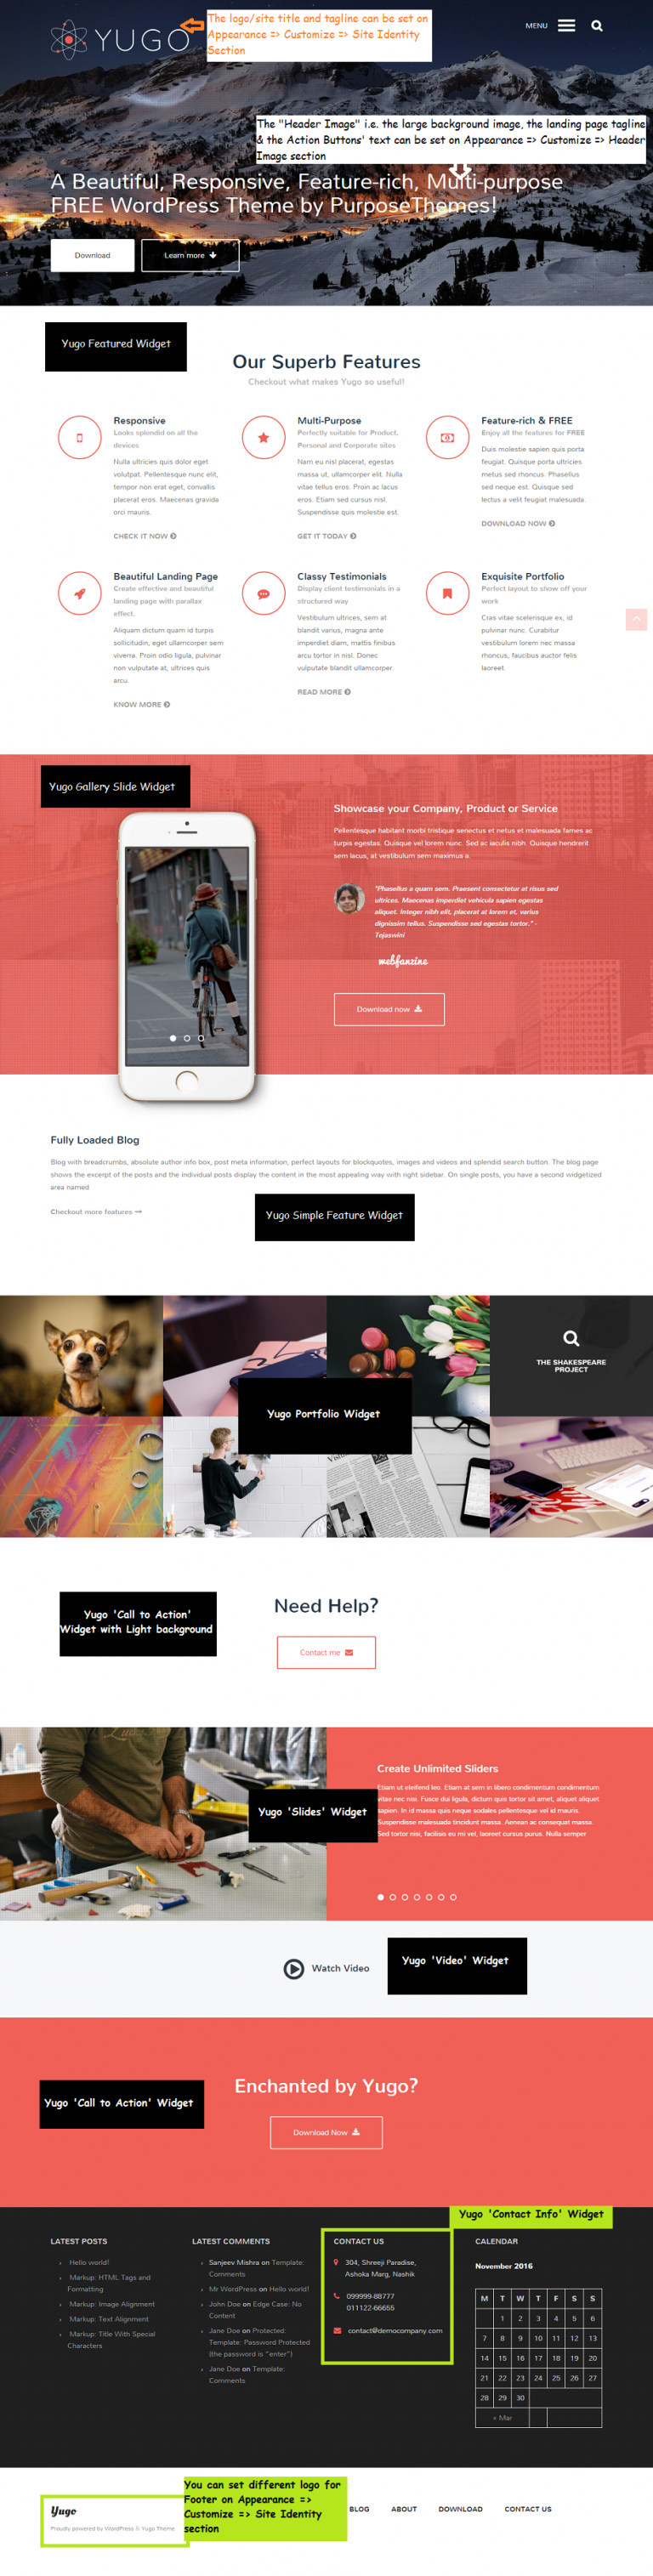 Yugo WordPress Theme Landing Page Setup